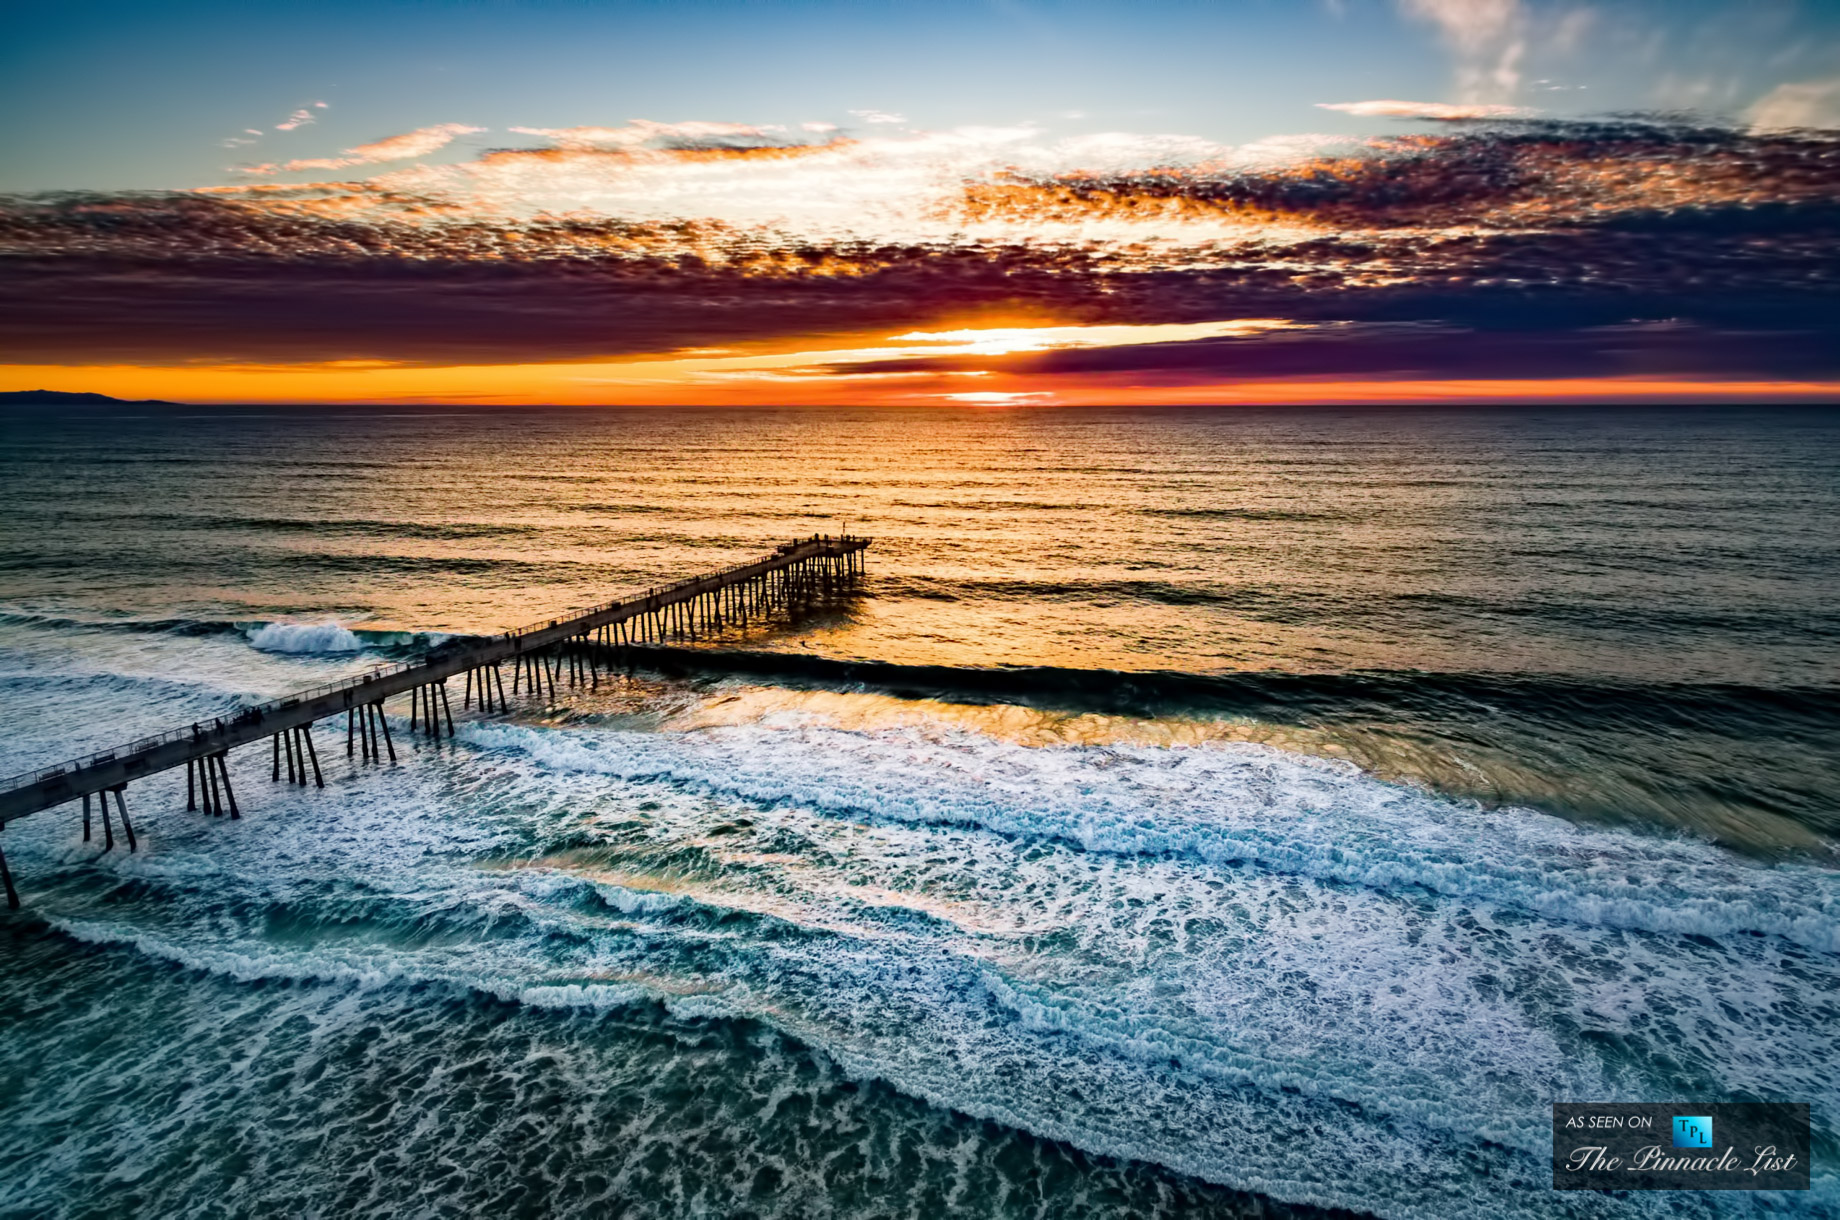 Sunset Aerial View of Hermosa Beach Pier - 1 Pier Ave, Hermosa Beach, CA 90254, USA